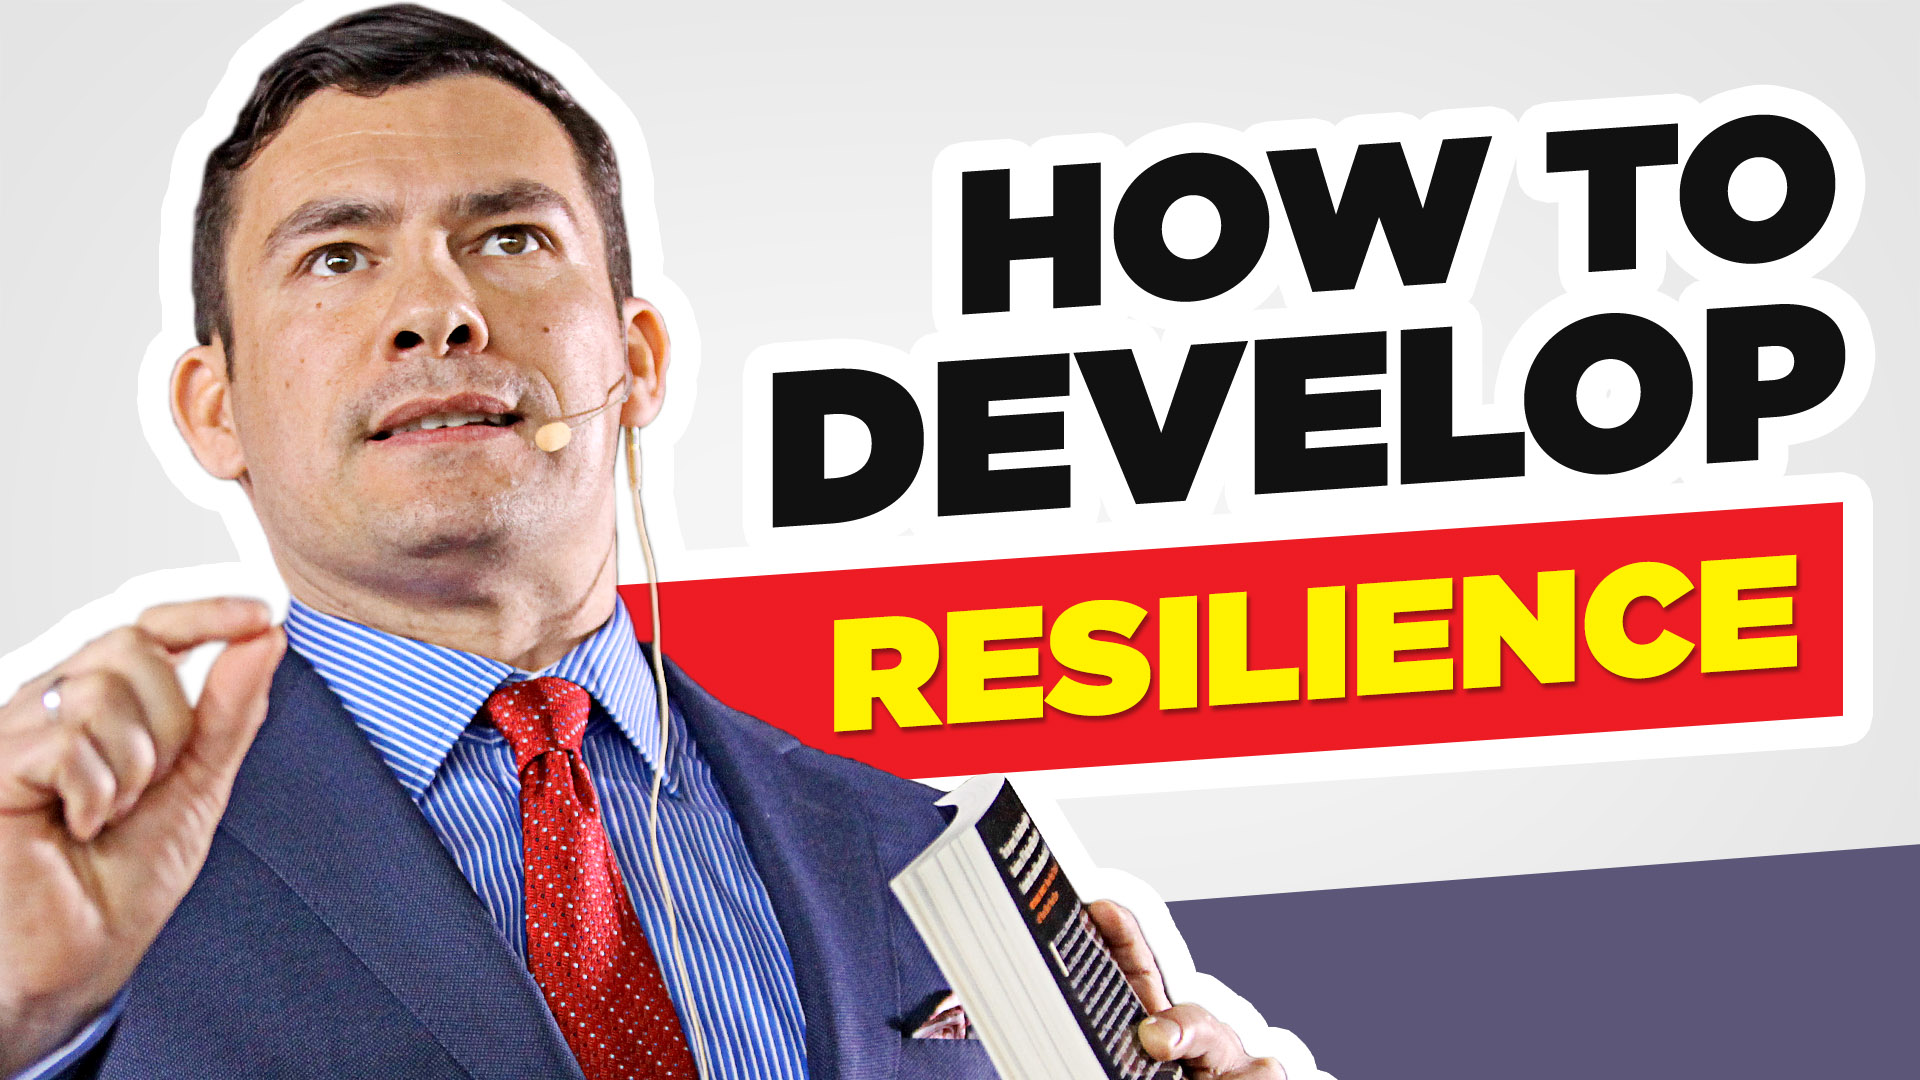 Resilience In Crisis: How To Bounce Back (Stress Management)